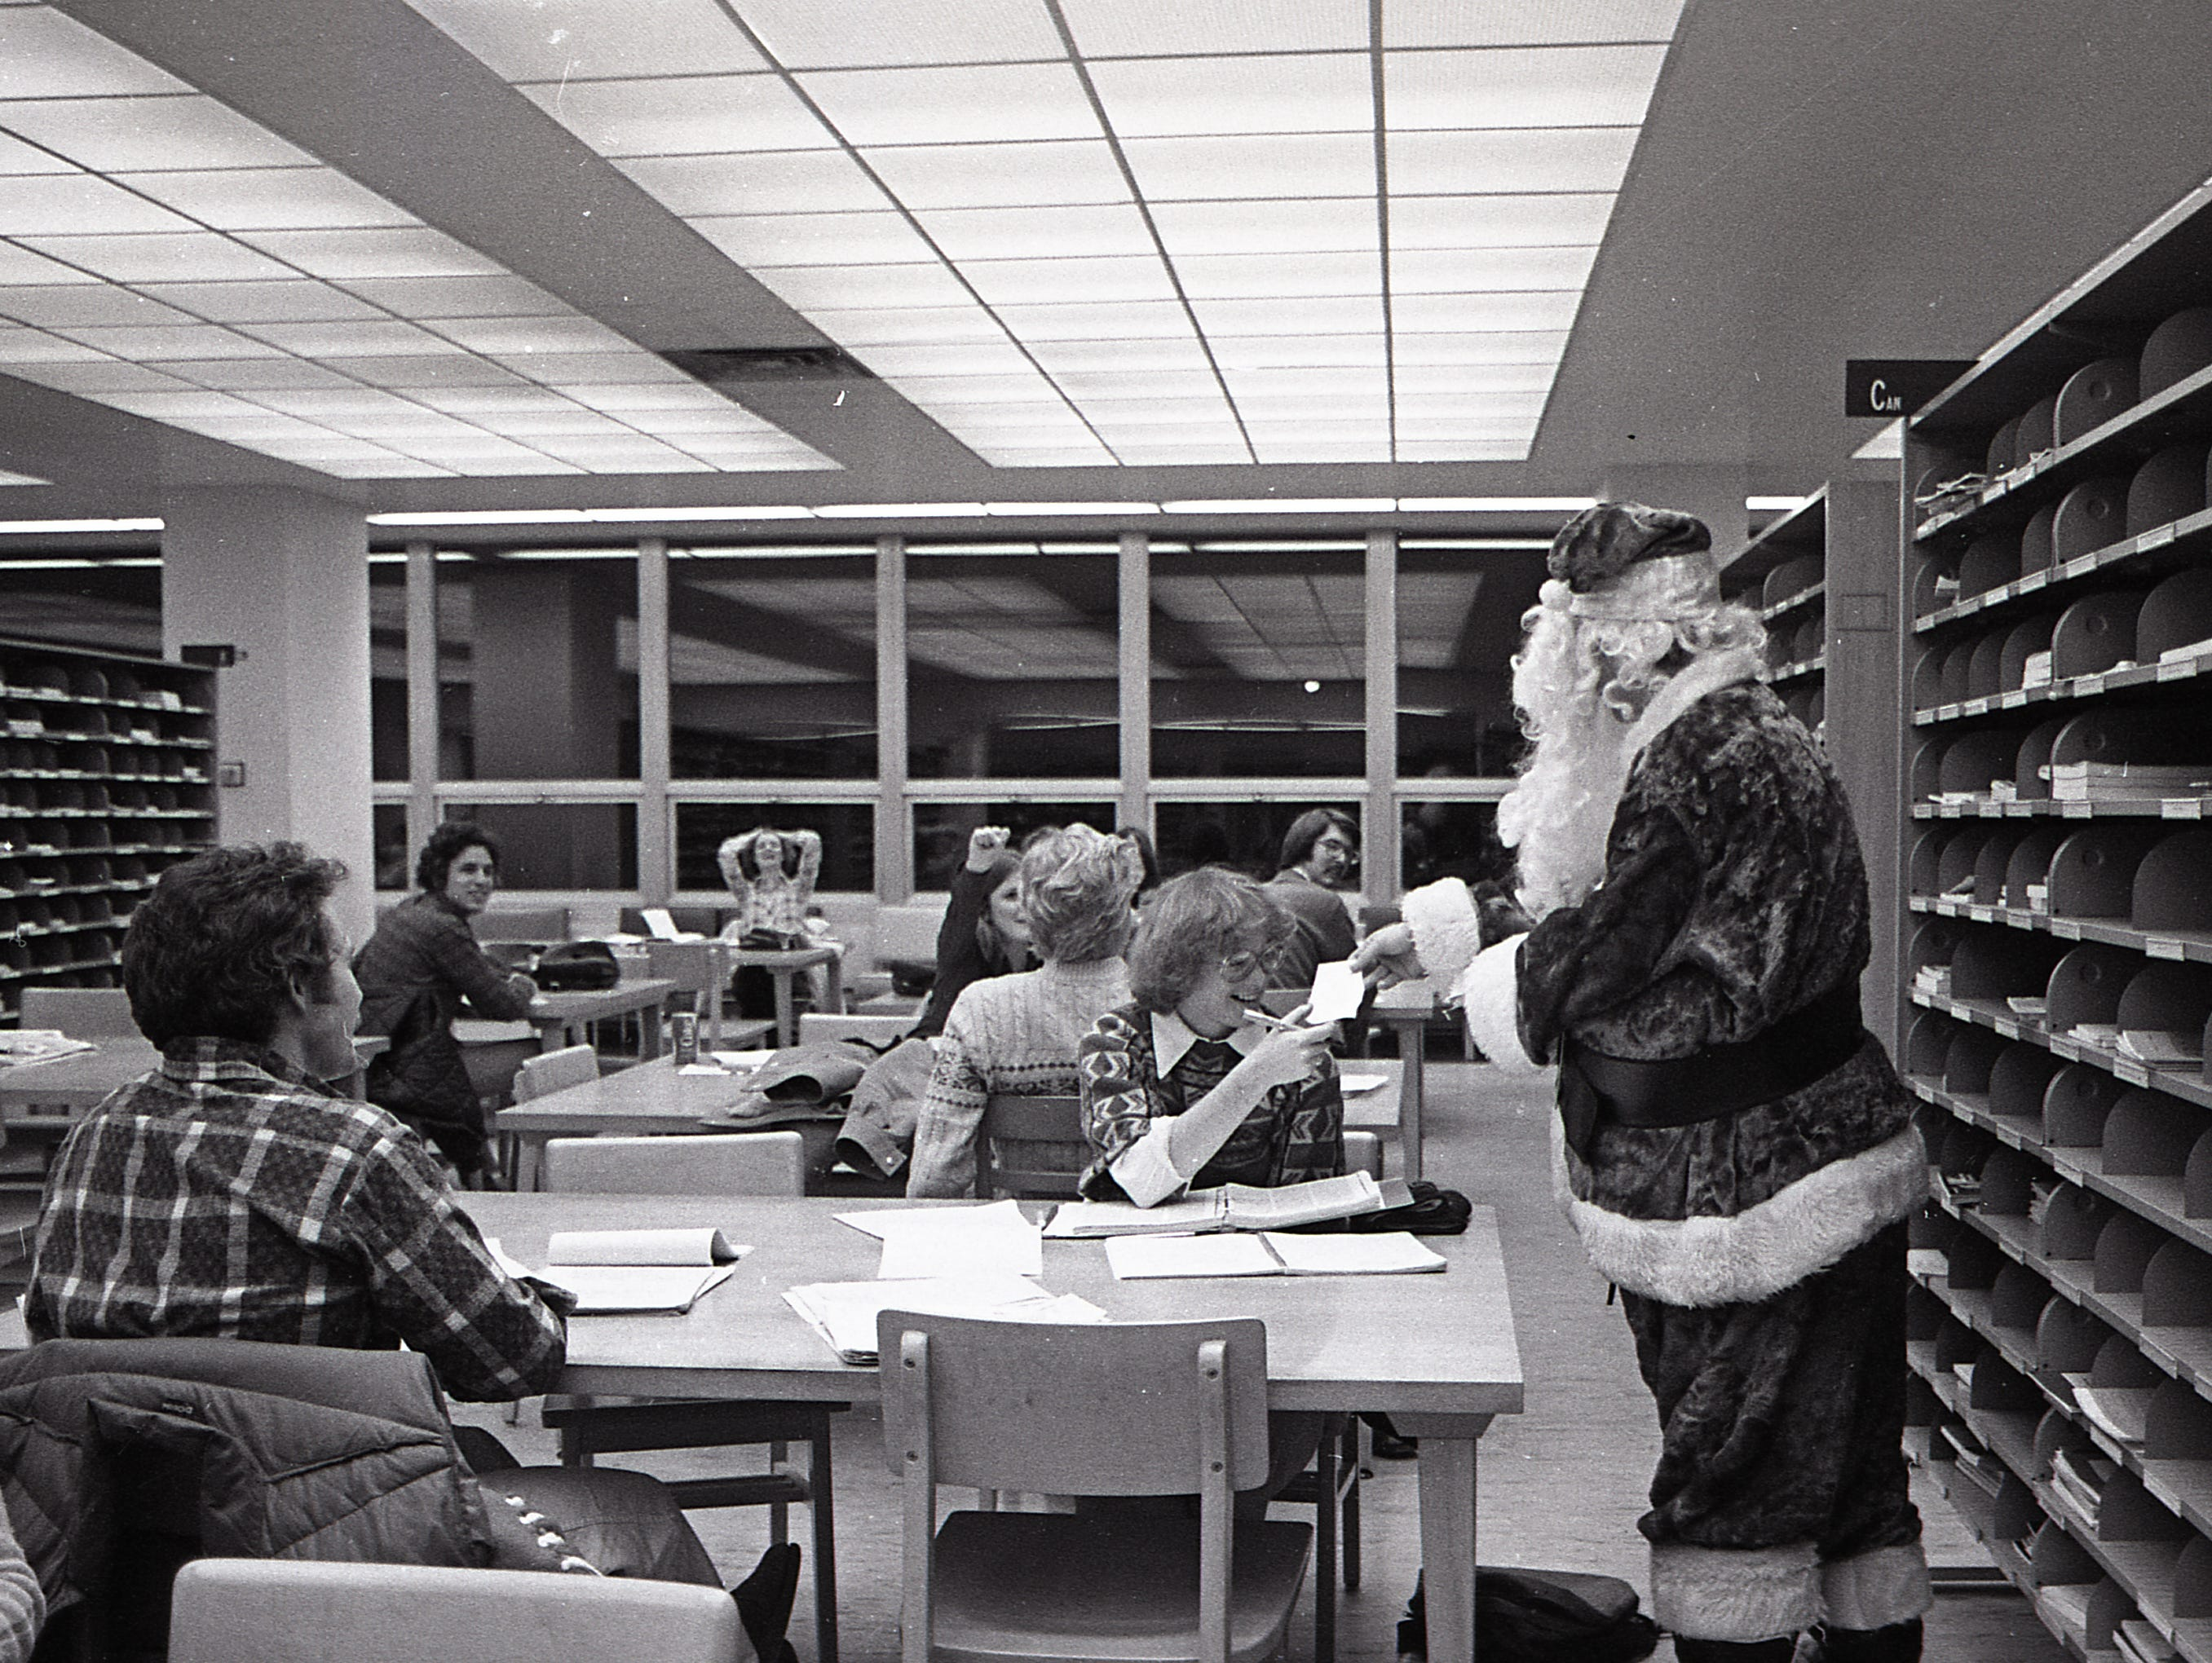 Santa hands out 4.0's to students studying at MSU's Main Library, Dec. 7, 1977.